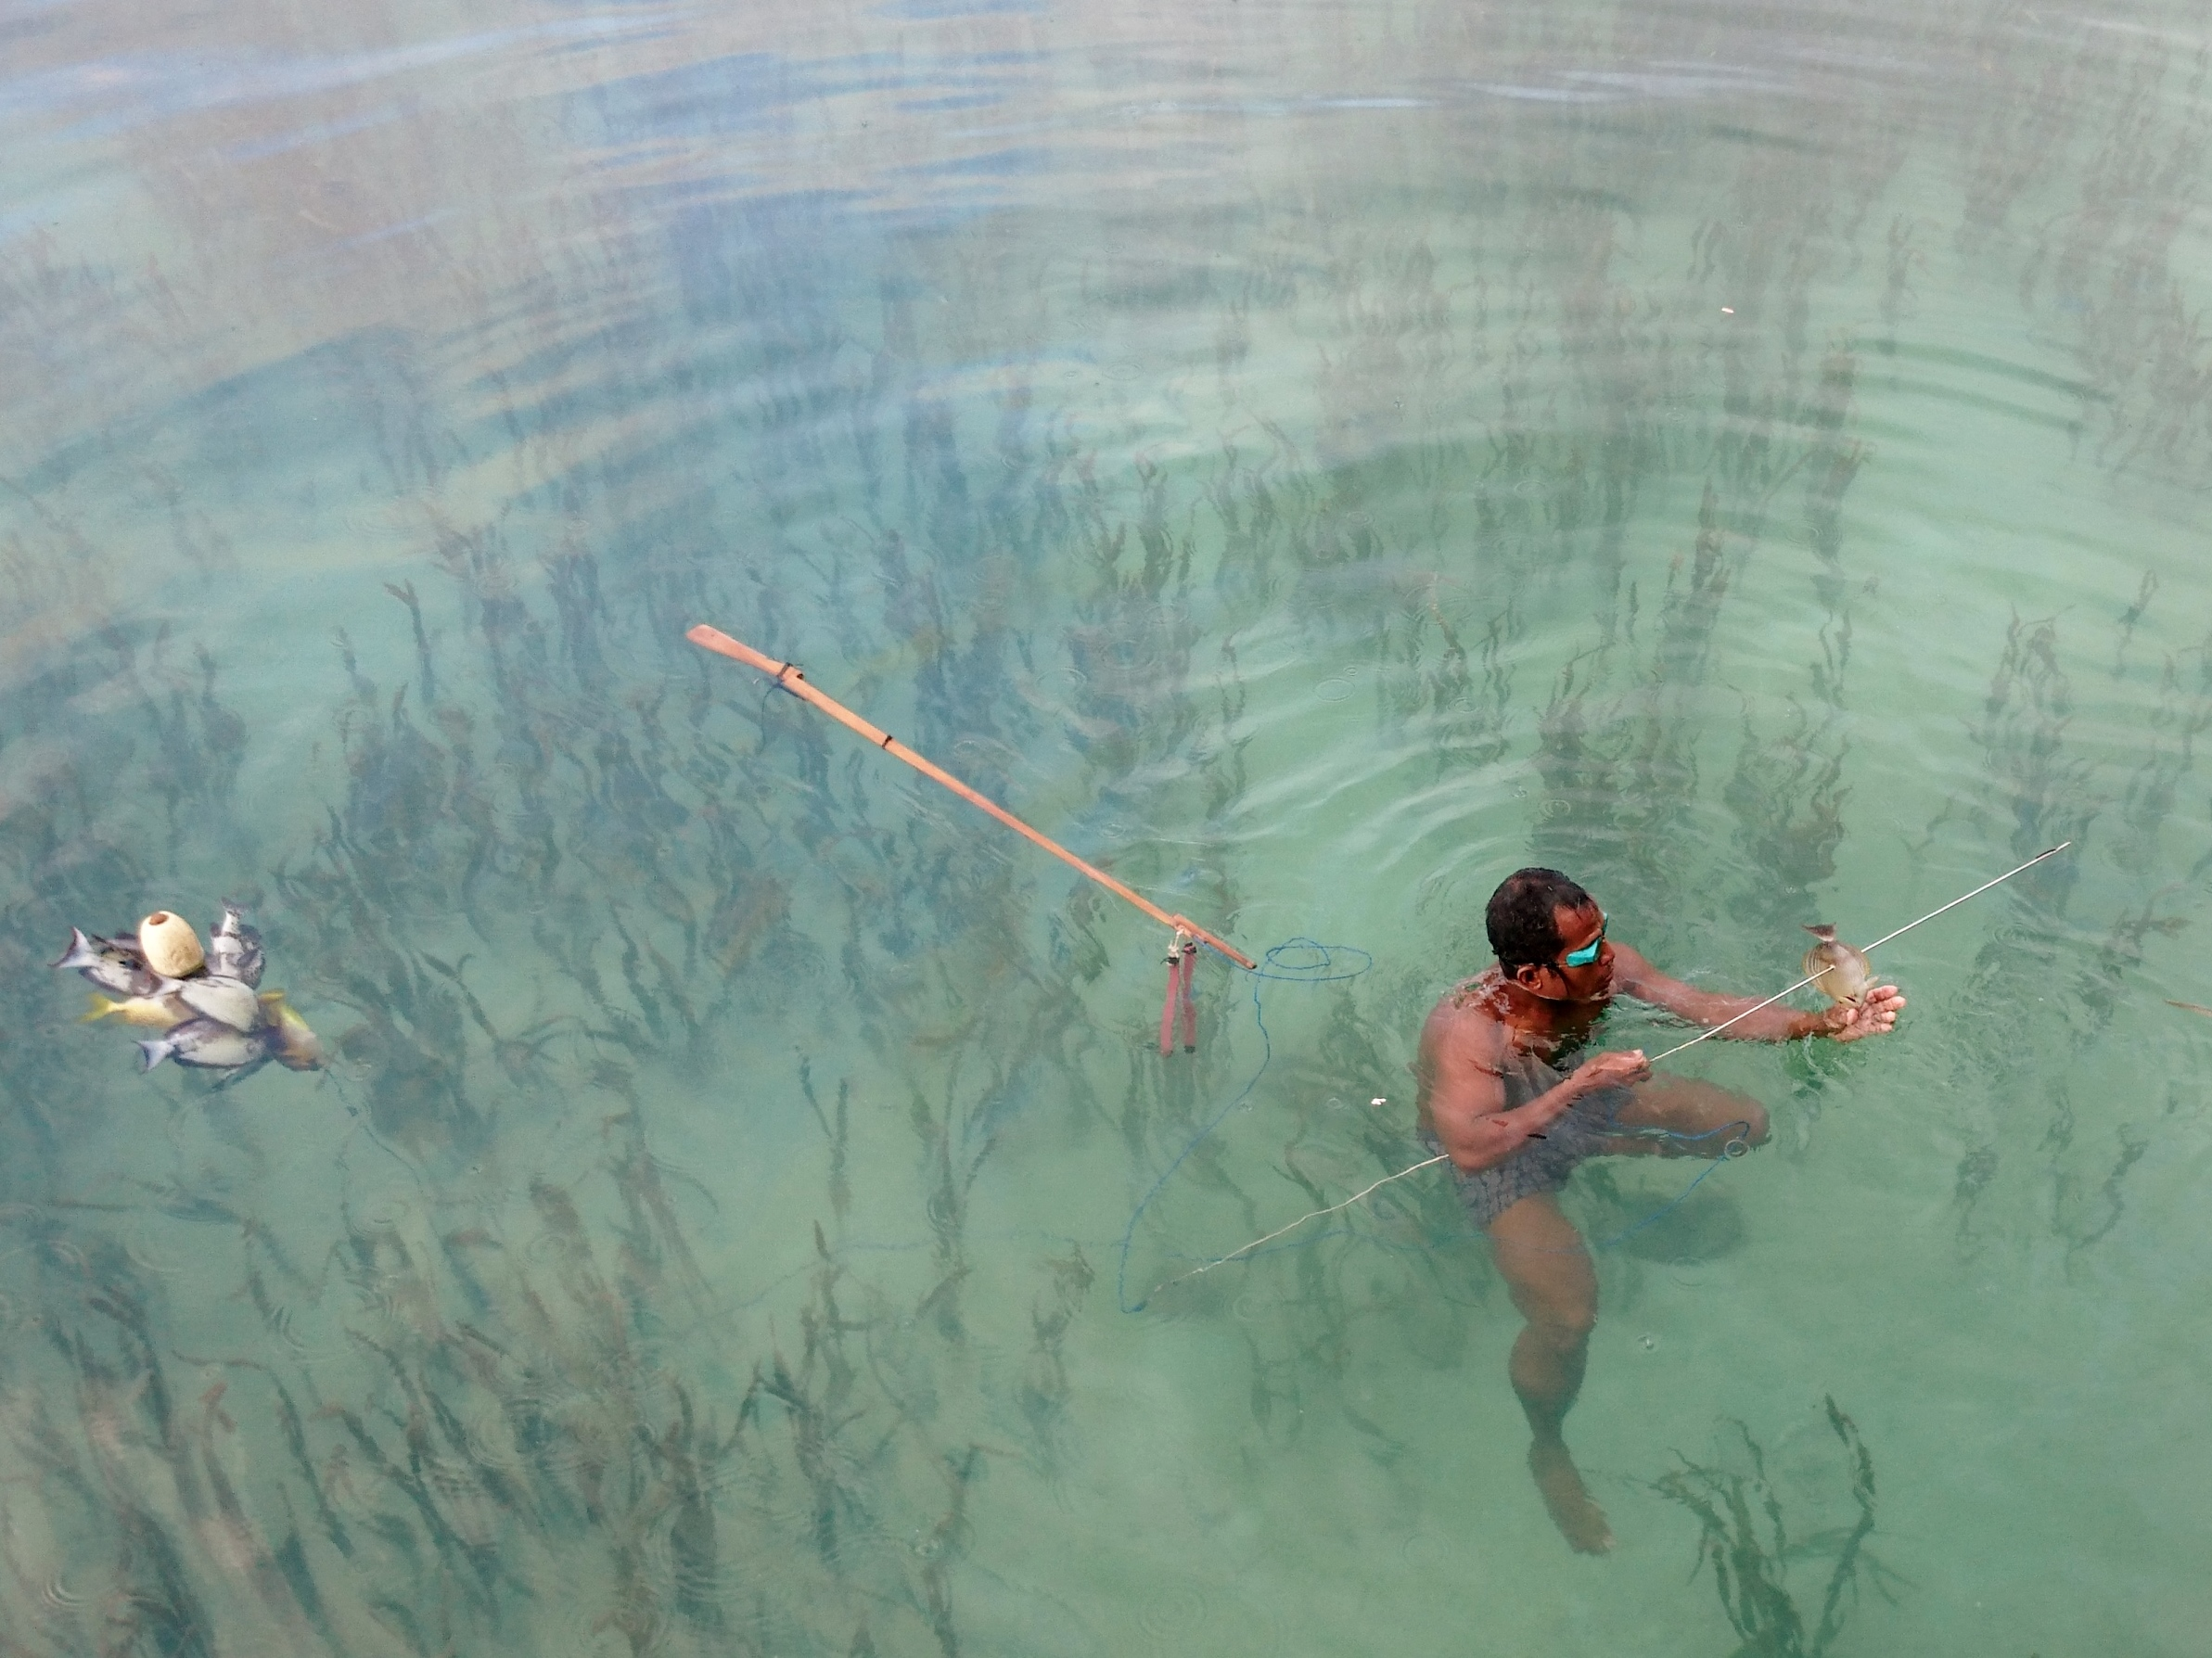 Indigenous fisher spear fishing in Indonesia